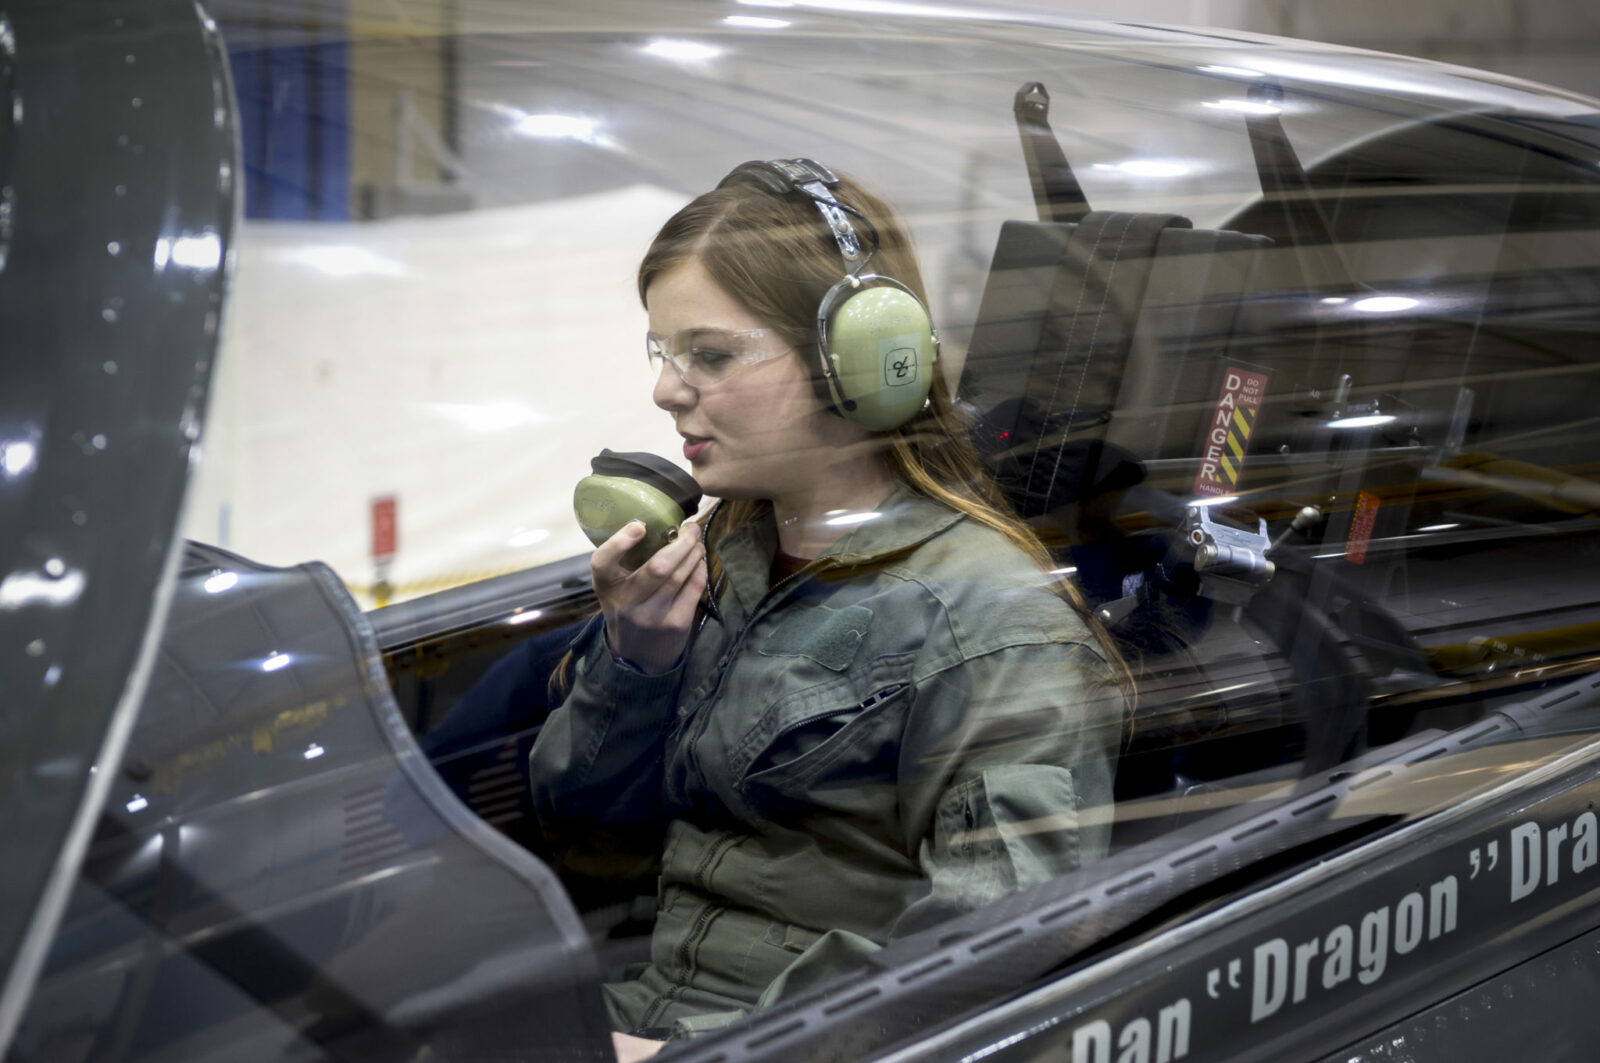 Missouri S&T student Katie Frogge in the cockpit of the Boeing T-X. She was among the first members of the public to view the new jet. Boeing photo.